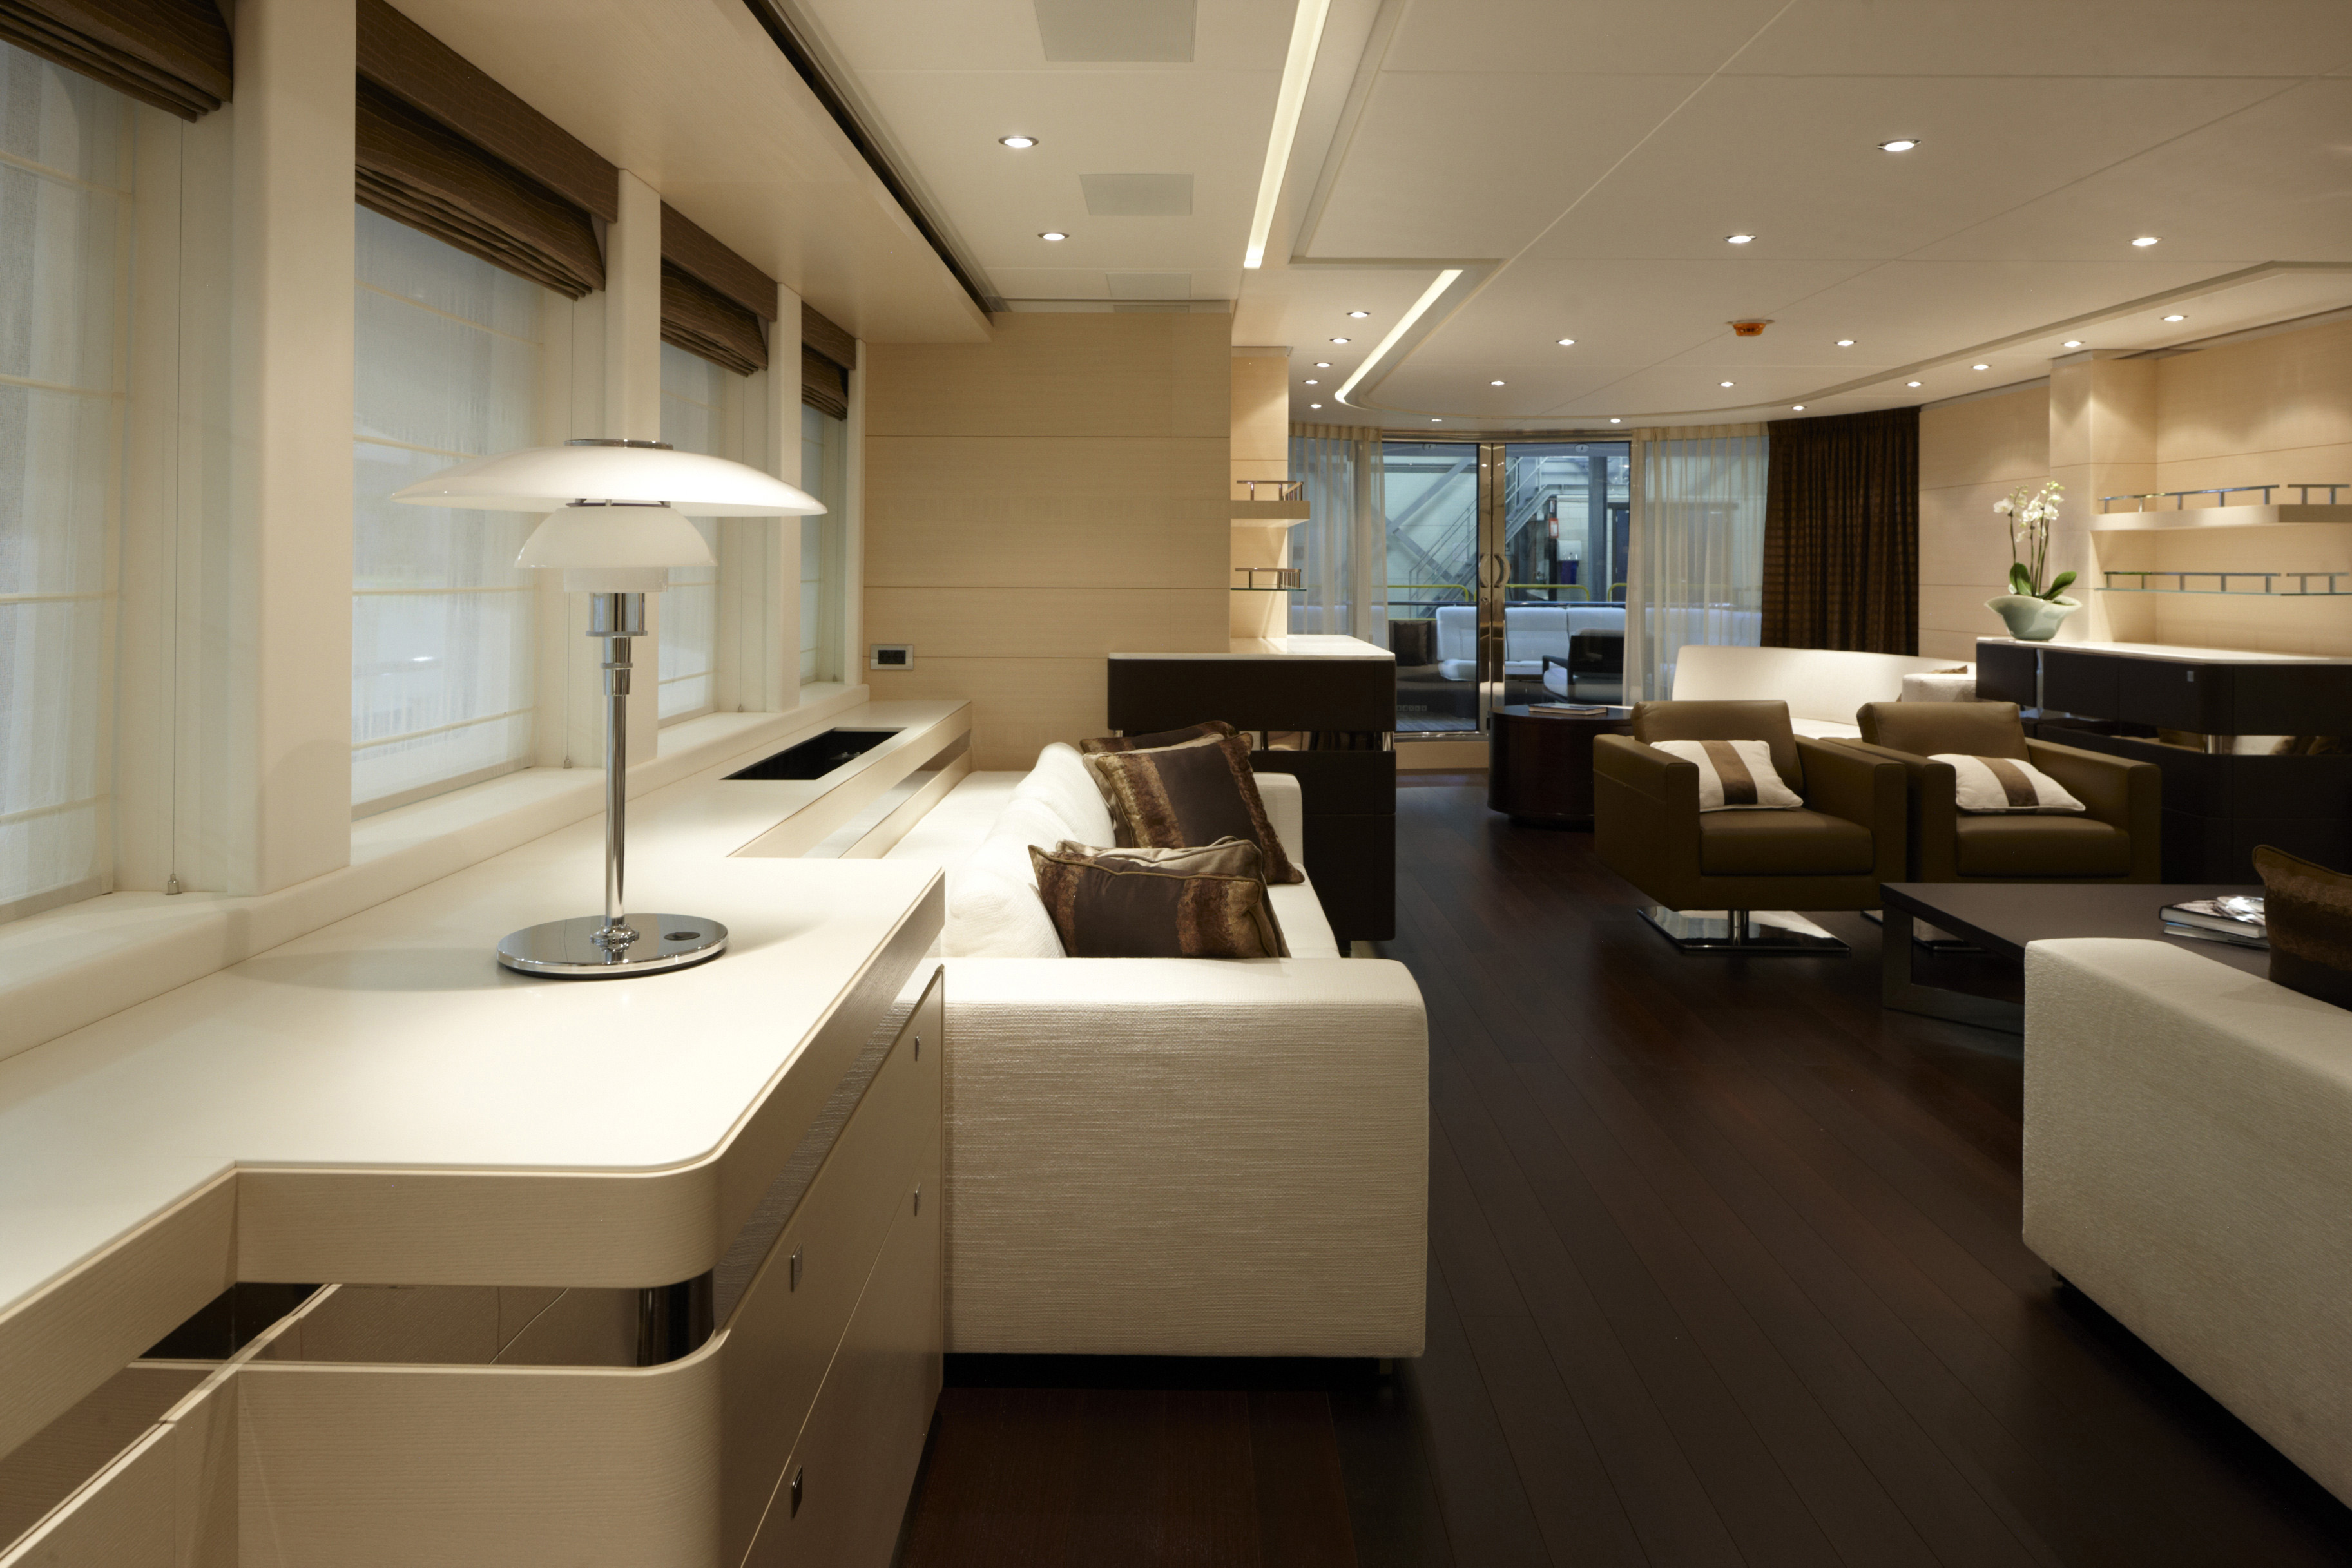 Inside luxury homes bathroom - Heesen Yachts Luxury 144ft Superyacht Lady L Launched From Shipyard